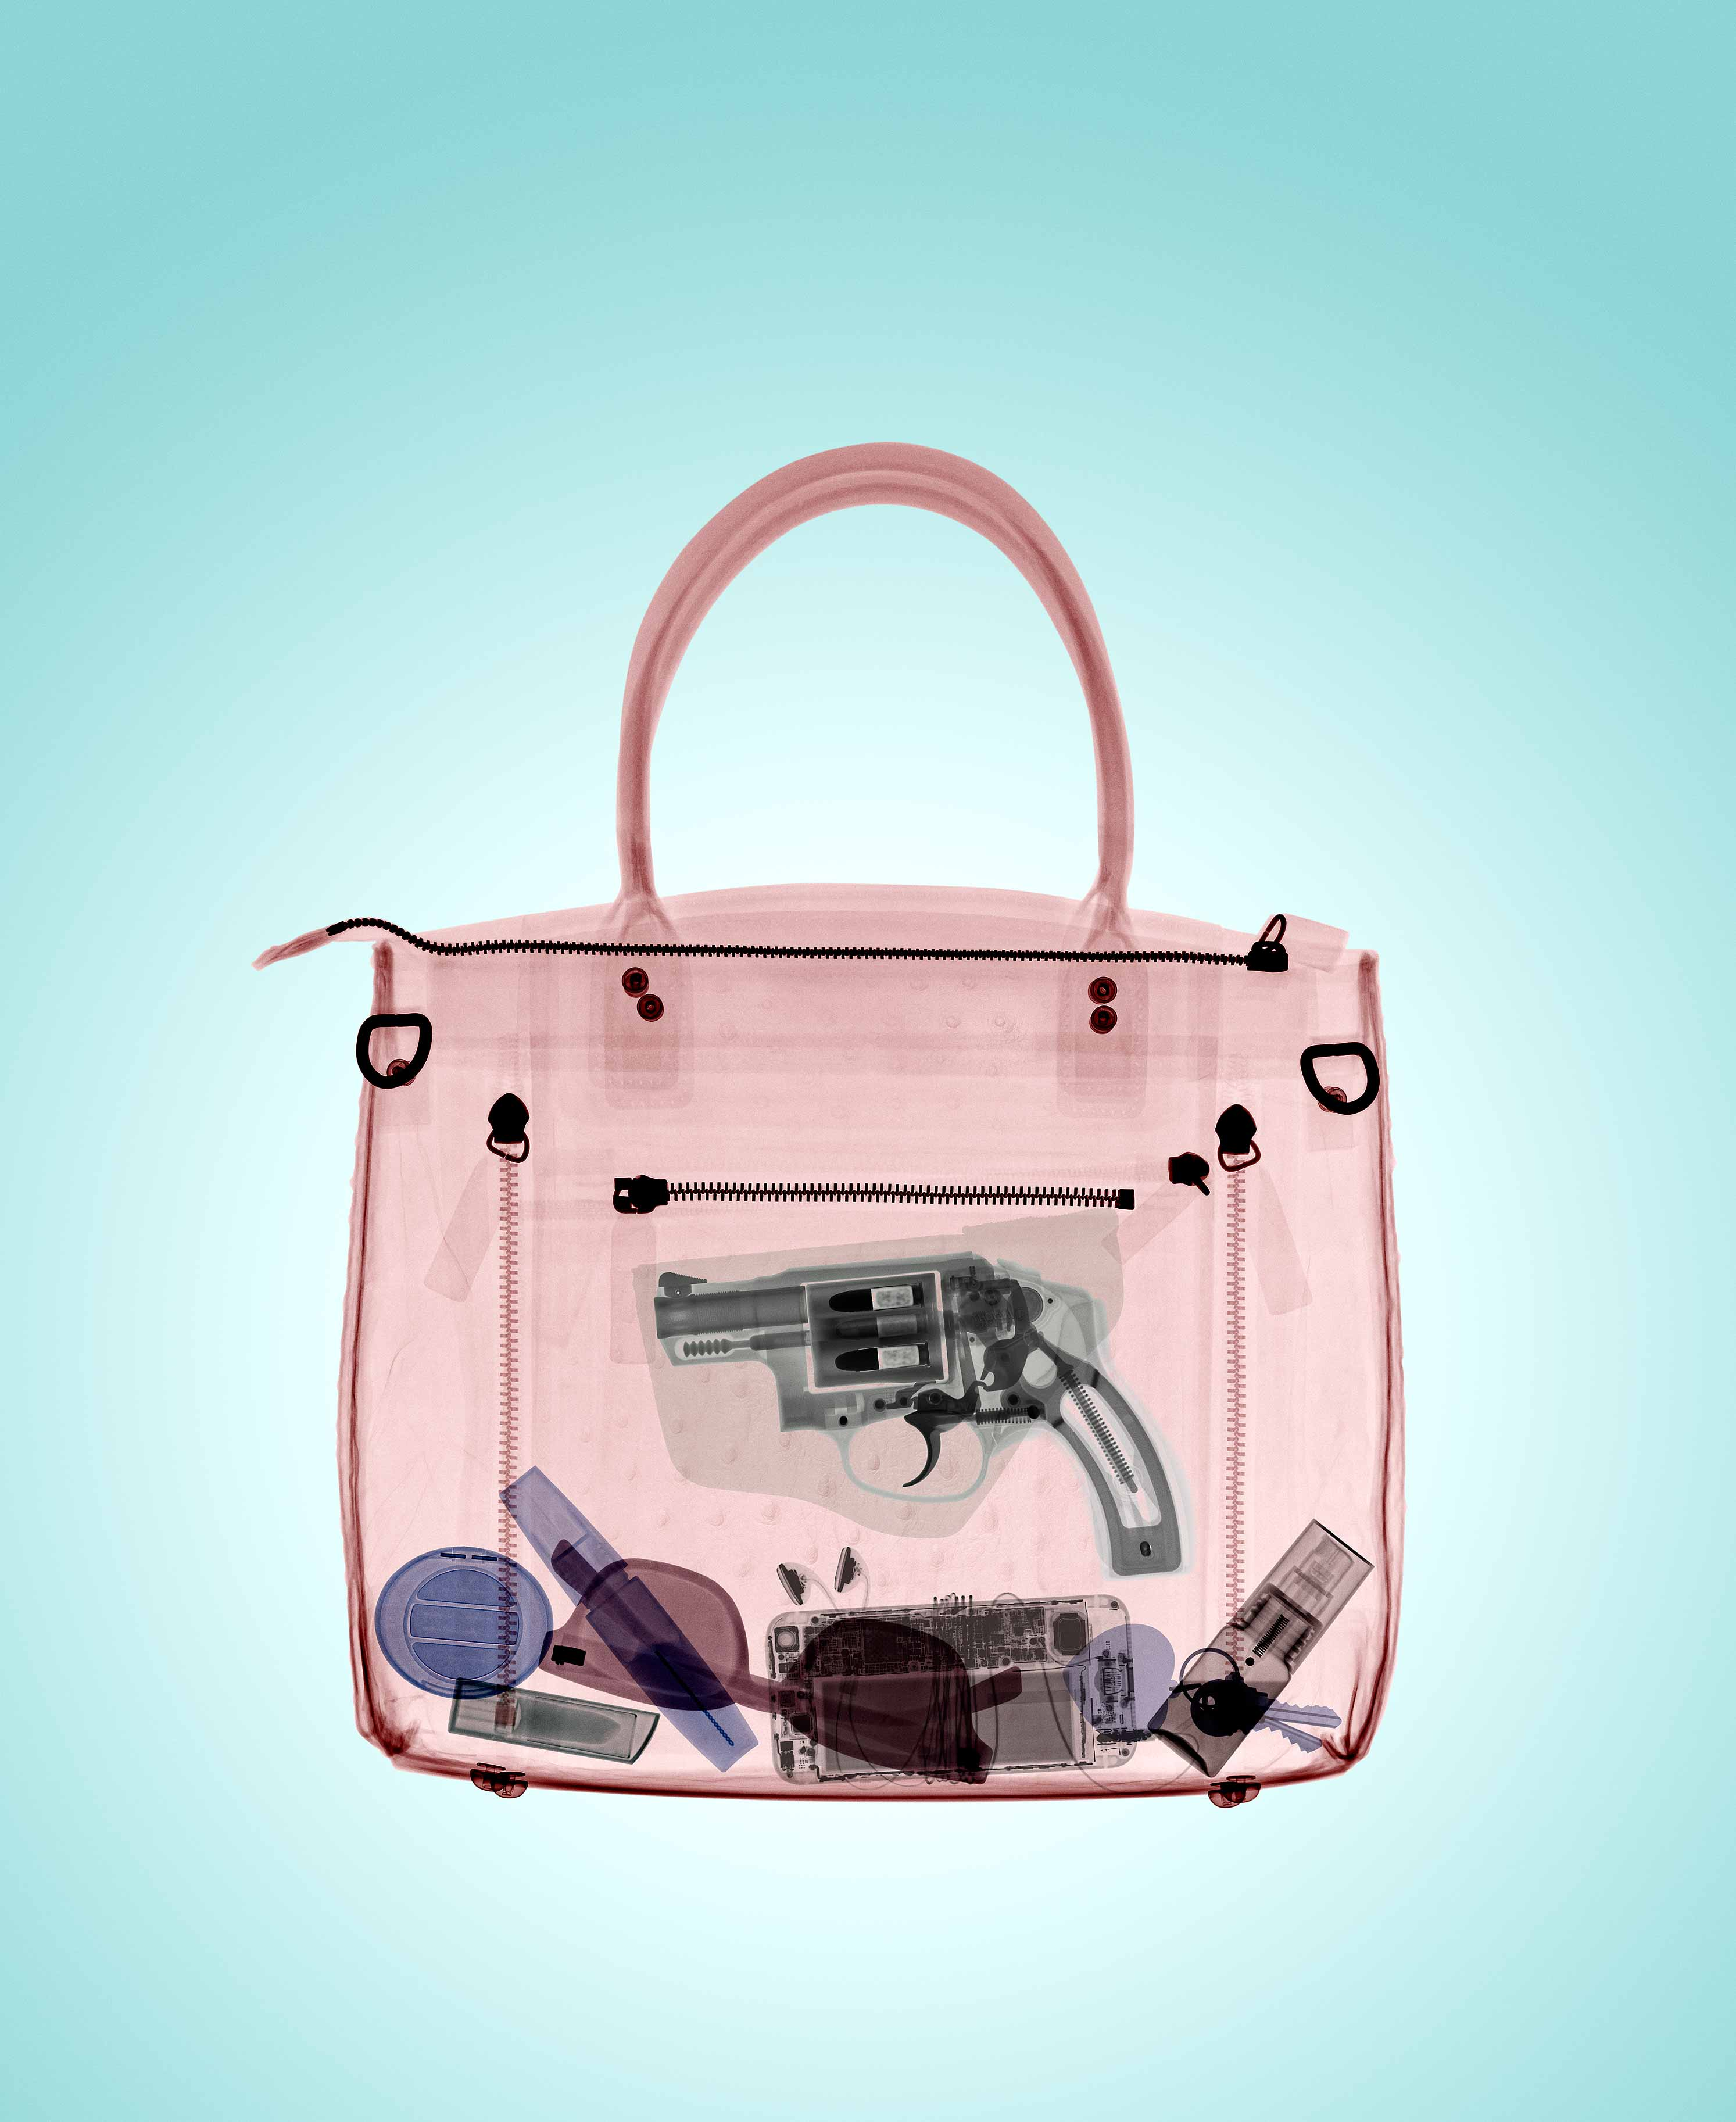 Companies are courting the growing ranks of women carrying concealed weapons with products like this handbag with a hidden gun pouch